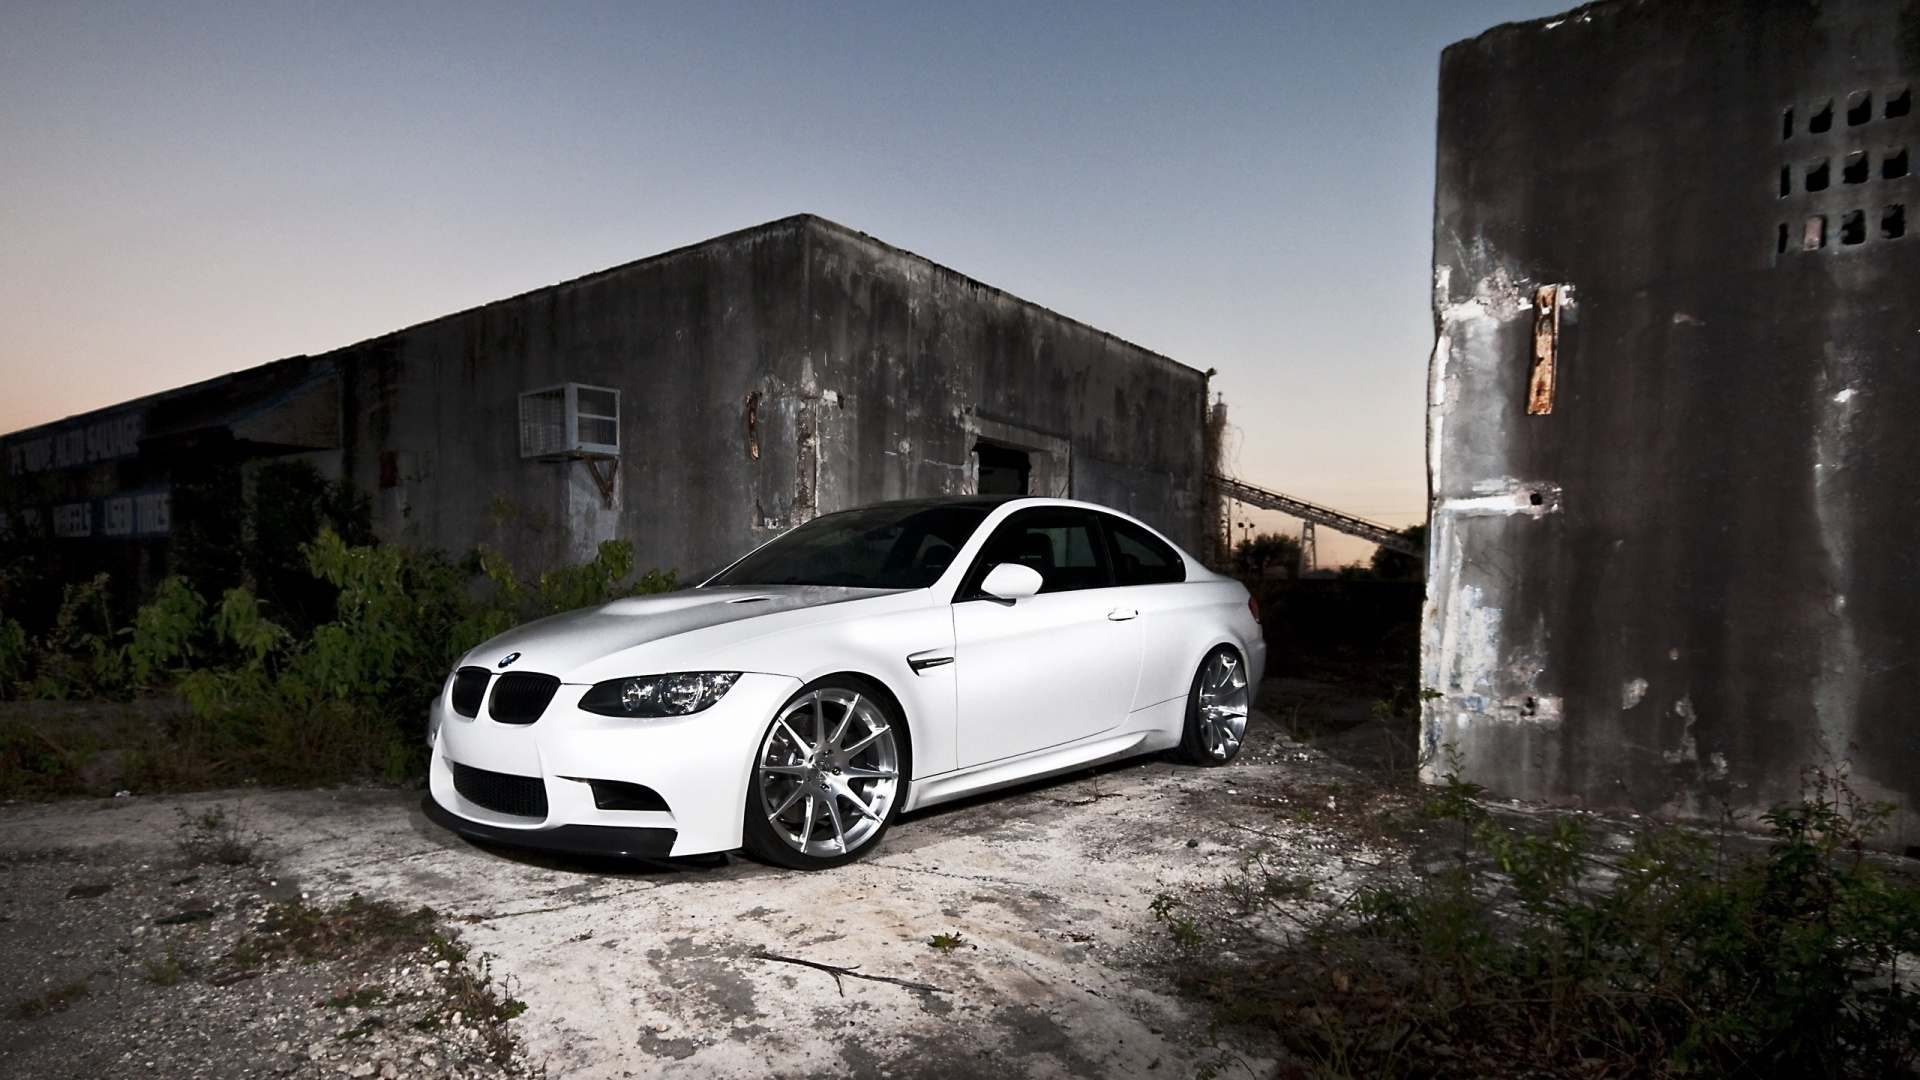 BMW M3 Wallpapers Android Pics Amazing 191 Wallpaper